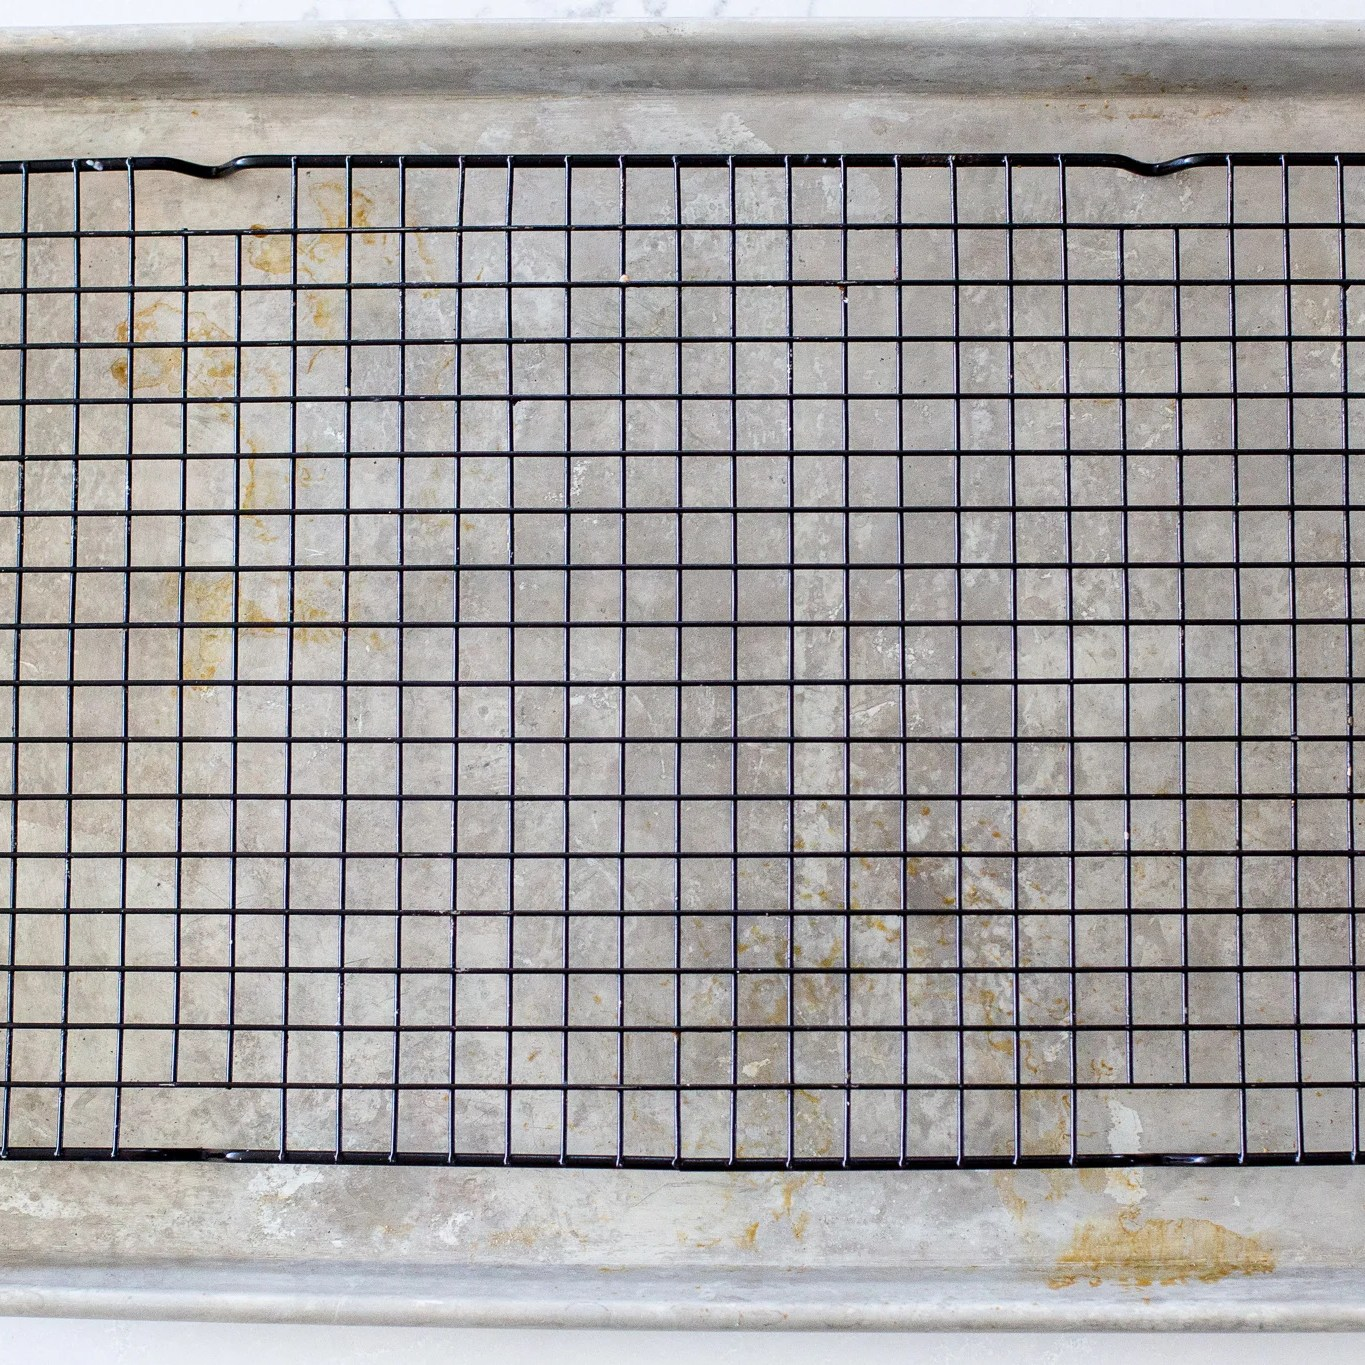 wire rack on a baking sheet